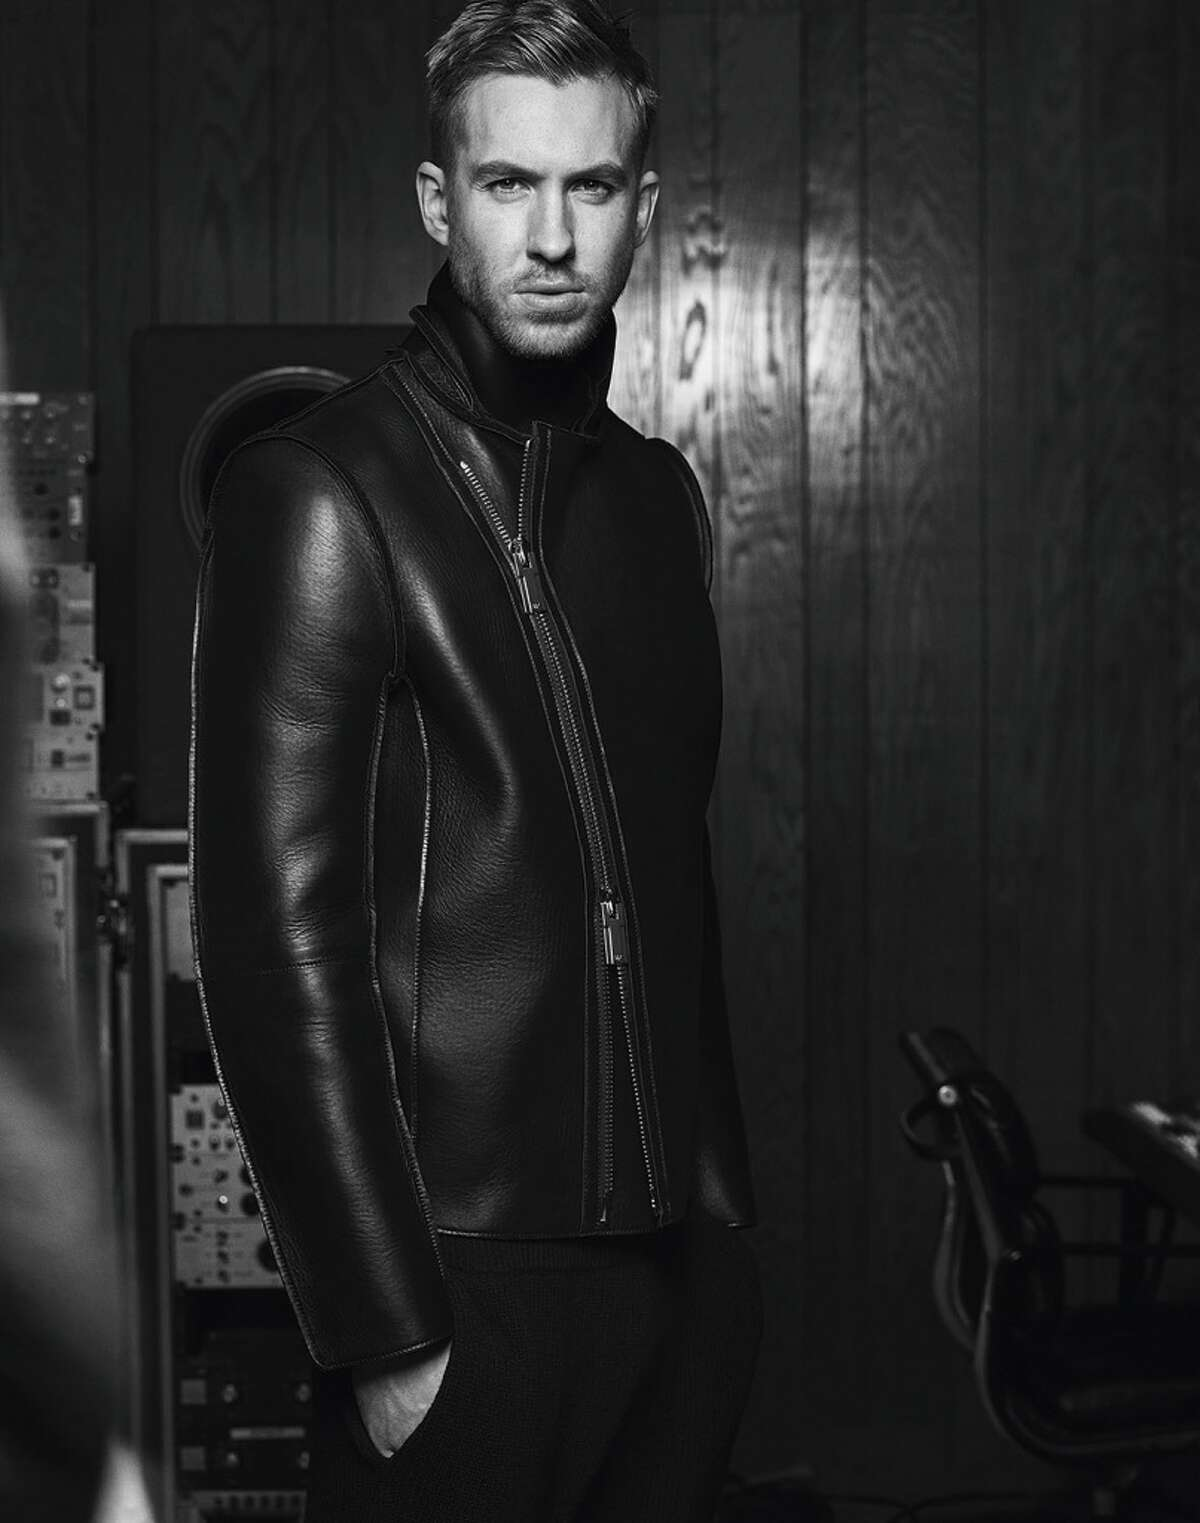 Calvin Harris models an Emporio Armani leather look. Harris, 31, and his girlfriend, Taylor Swift, are Forbes magazine's 2015 highest paid couple, taking in jointly $146 million. Harris is Emporio Armani's model for its fall 2015/16 campaign.